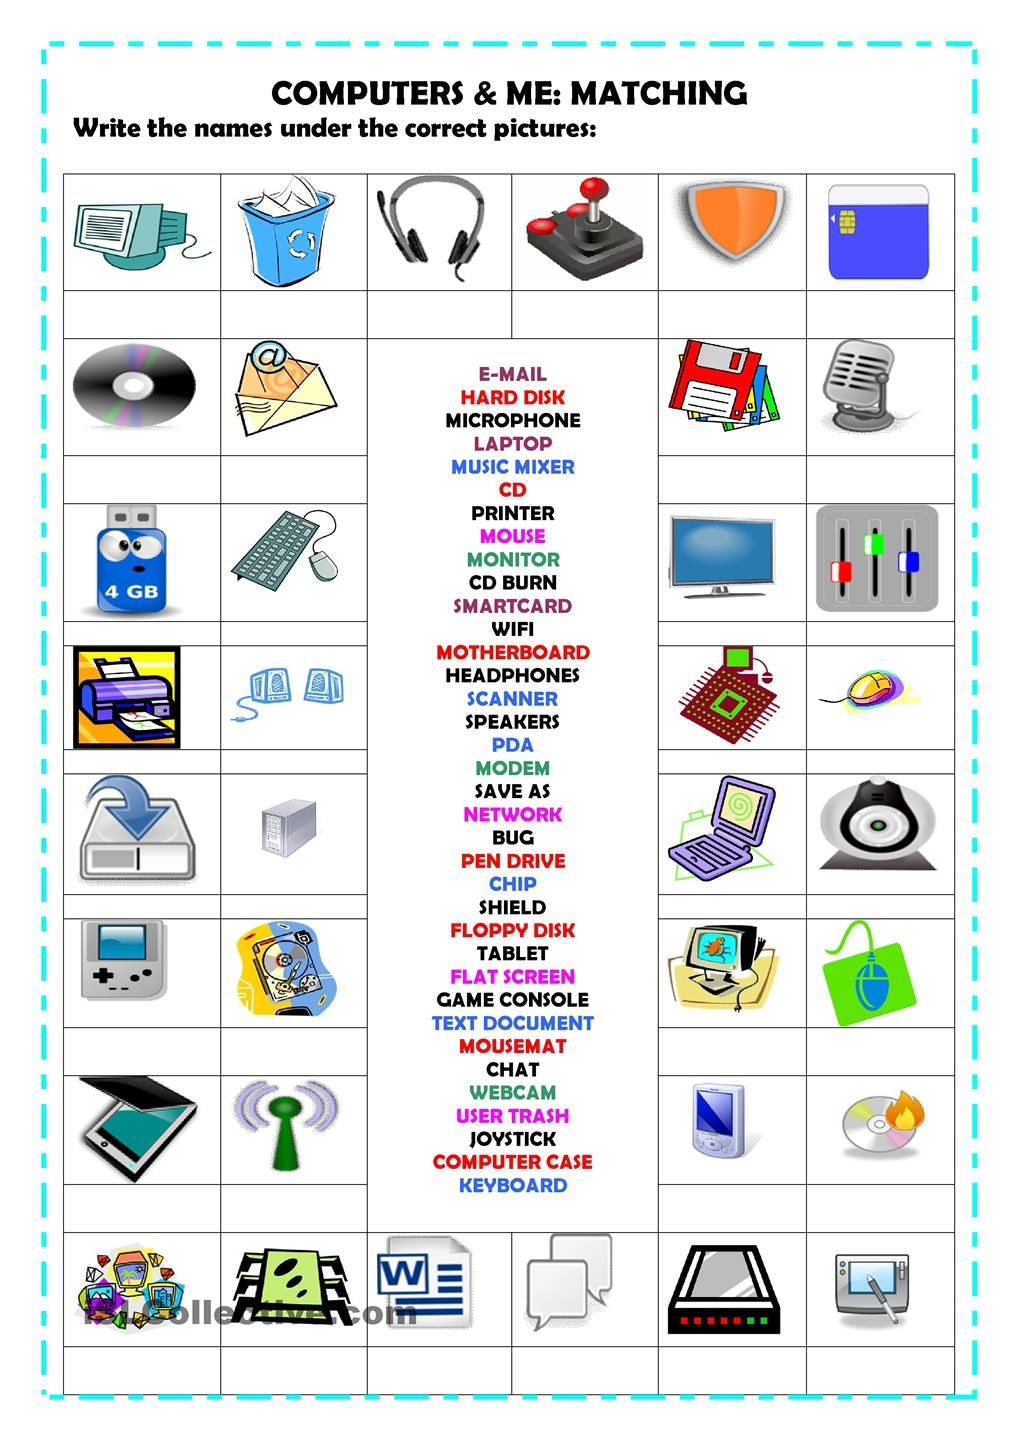 Free Worksheet Computer Technology Worksheets smart way to be cyber safe esmart pinterest a matching activity with 36 words revise vocabulary on computers i hope its useful have nice day gloria technology worksh